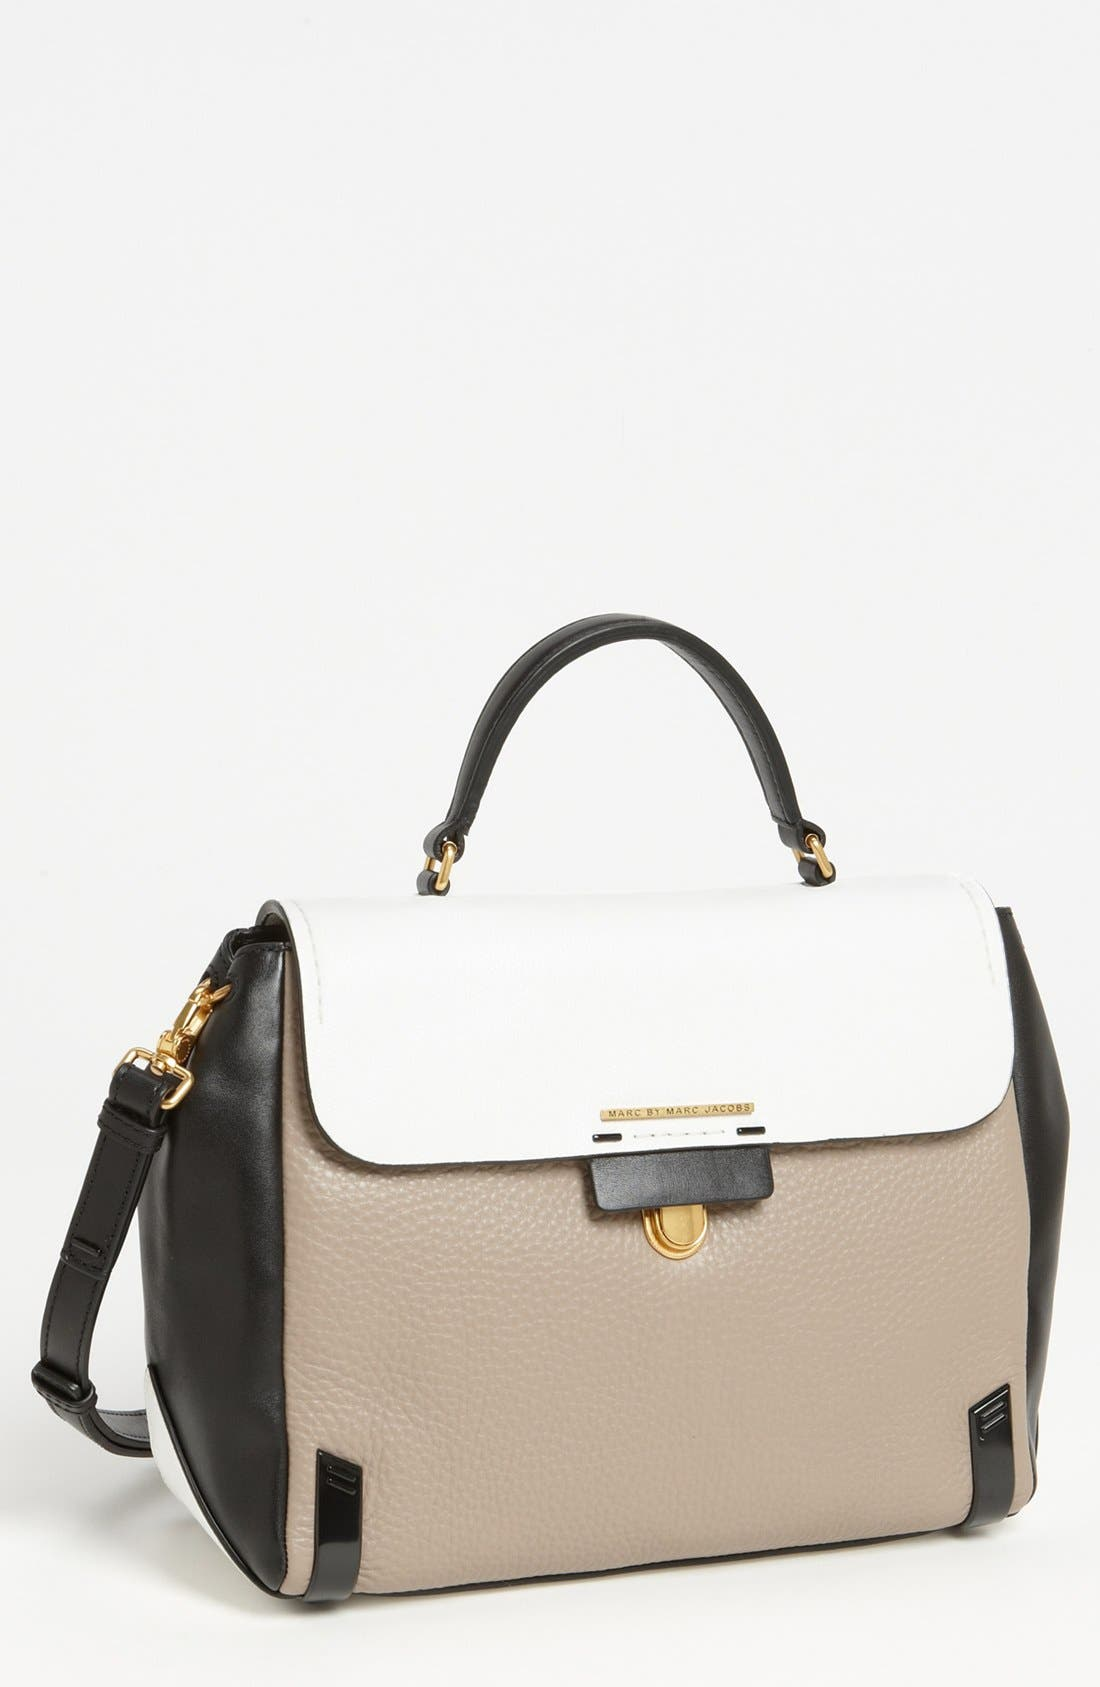 MARC JACOBS, MARC BY MARC JACOBS 'Sheltered Island' Colorblock Leather Satchel, Medium, Main thumbnail 1, color, 250